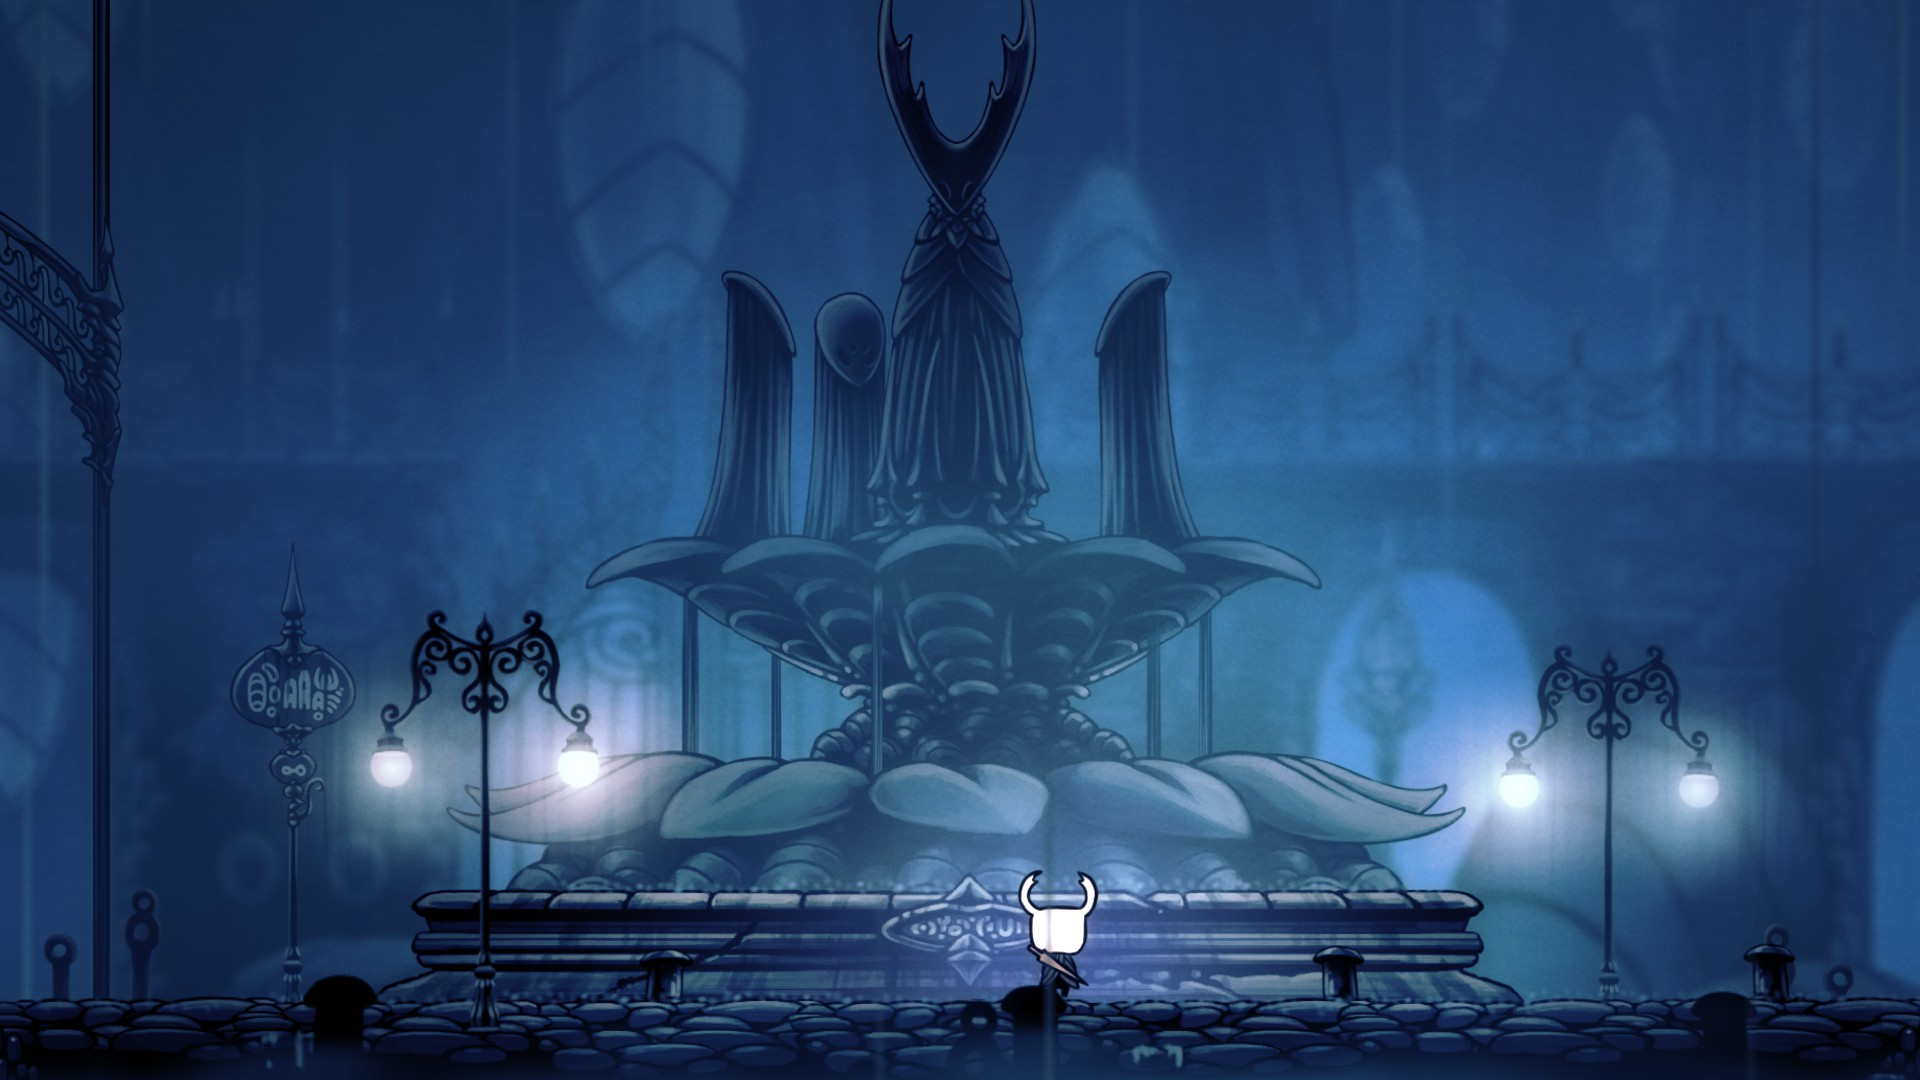 Full Hd Cars Wallpapers For Pc Team Cherry Hollow Knight Wallpapers Hd Desktop And